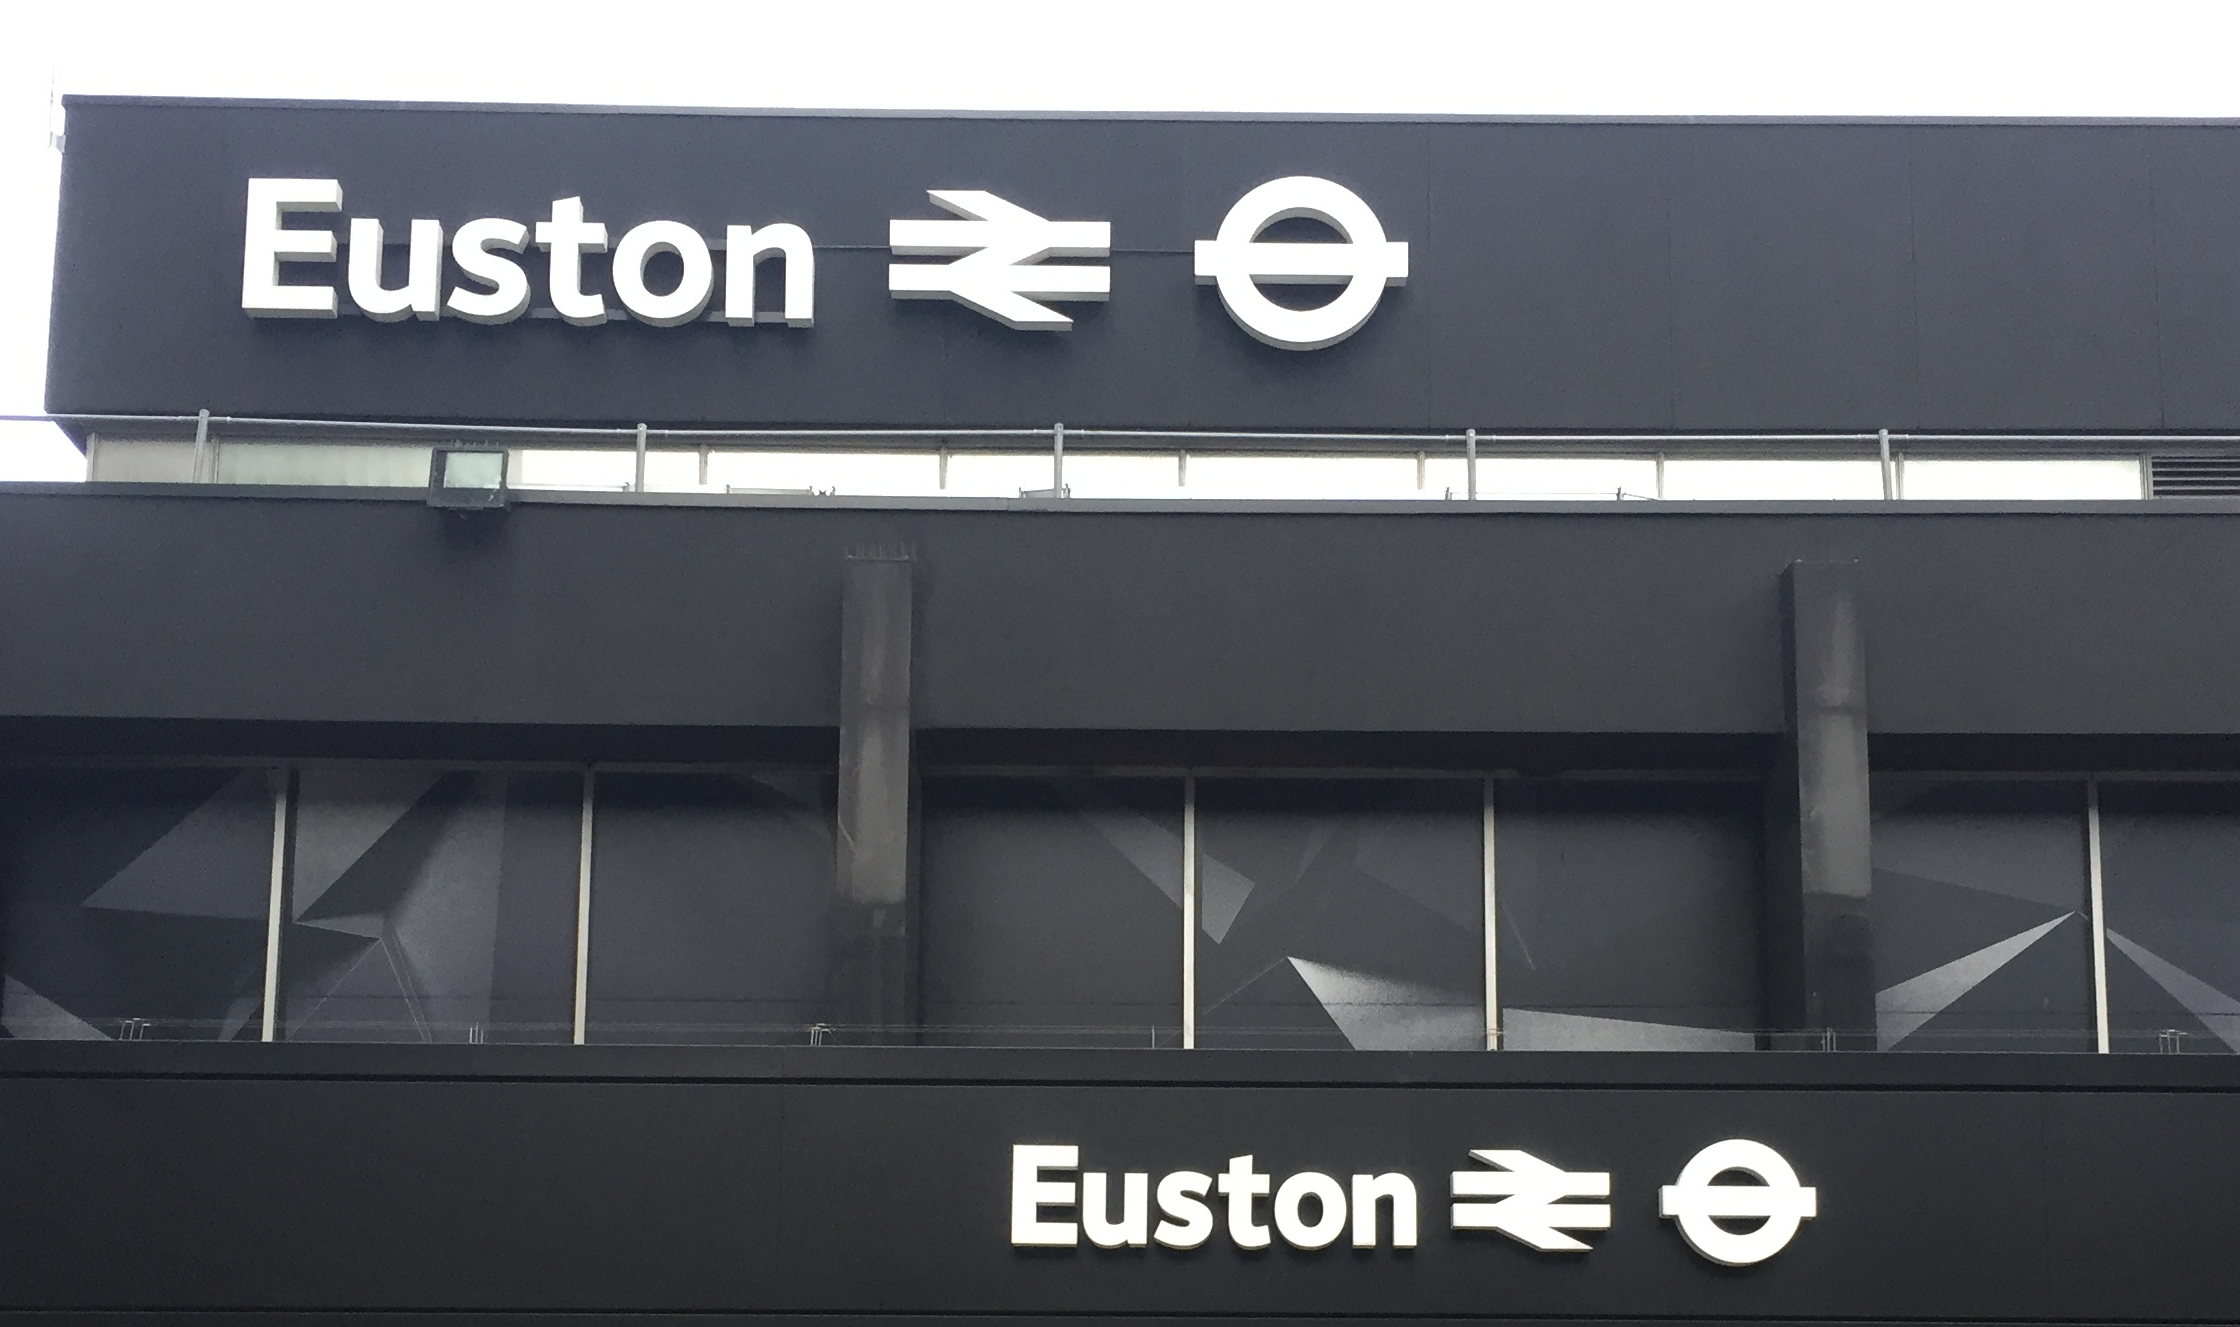 London Euston – Welcome